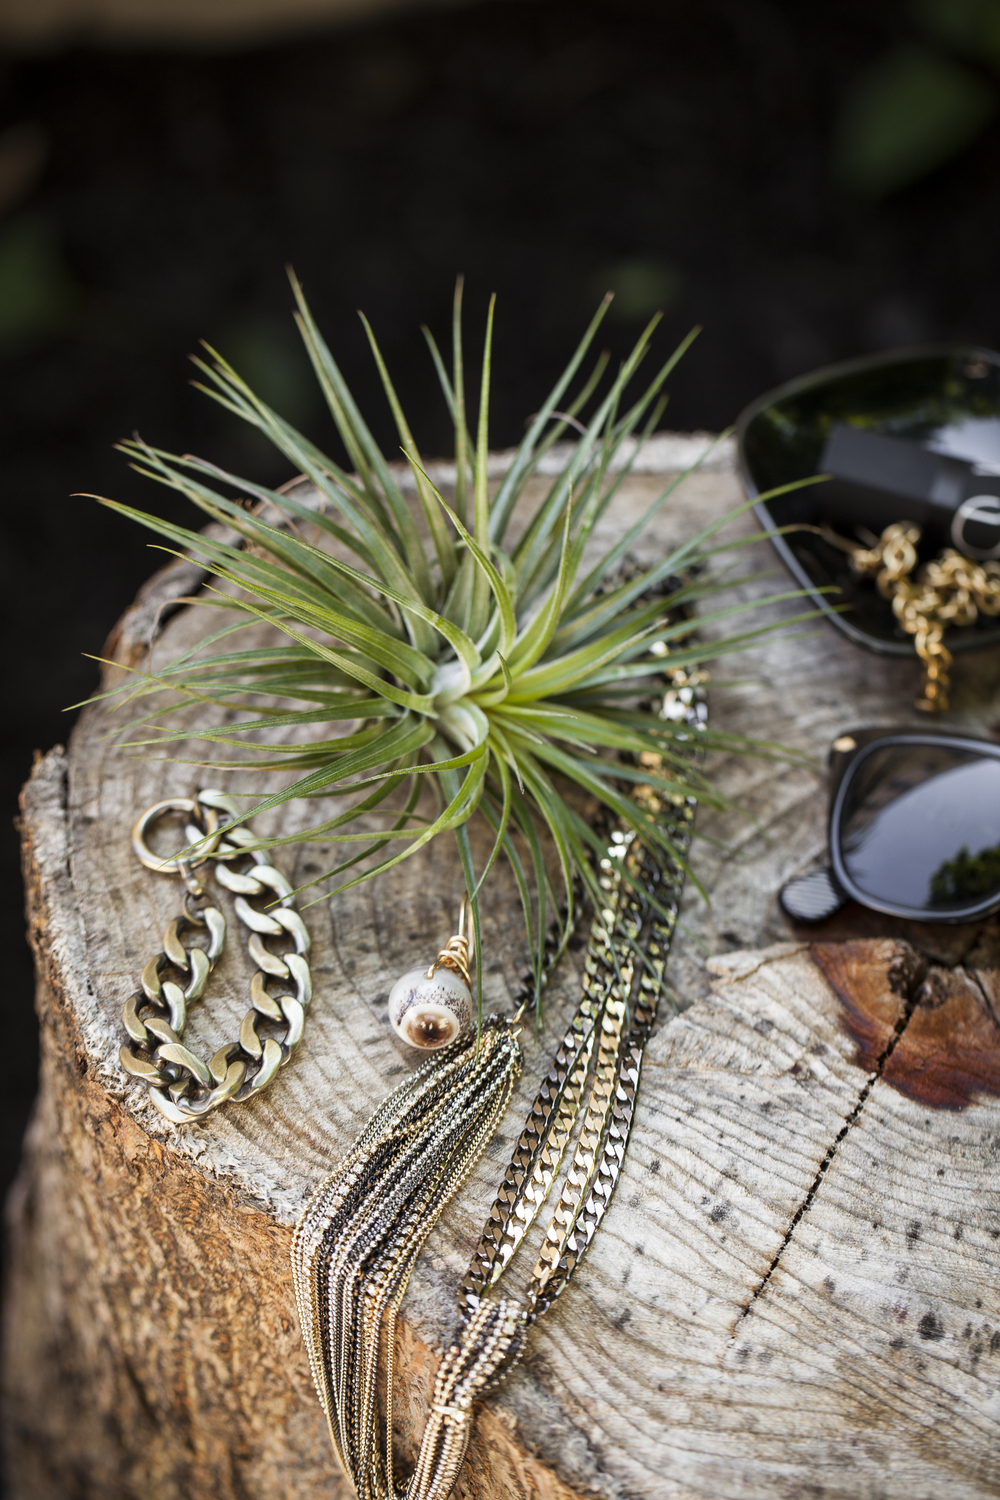 Barbara Campbell Handcrafted Accessories Made In Brooklyn In The USA